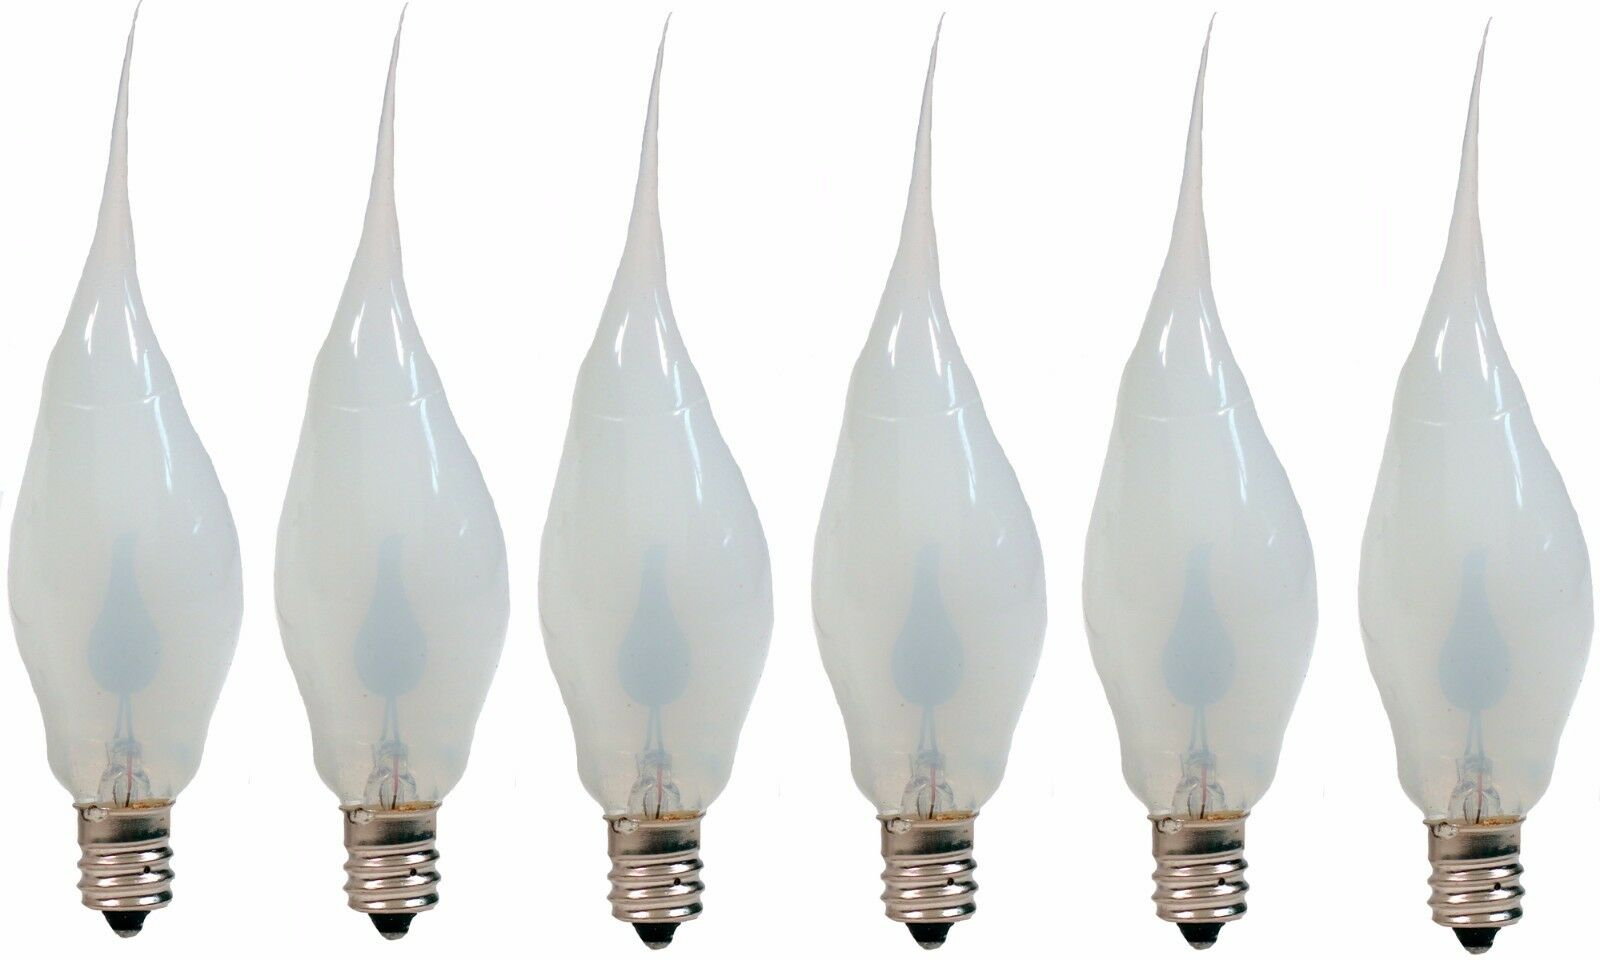 silicone dipped flicker flame light bulbs, 3 watt, great halloween